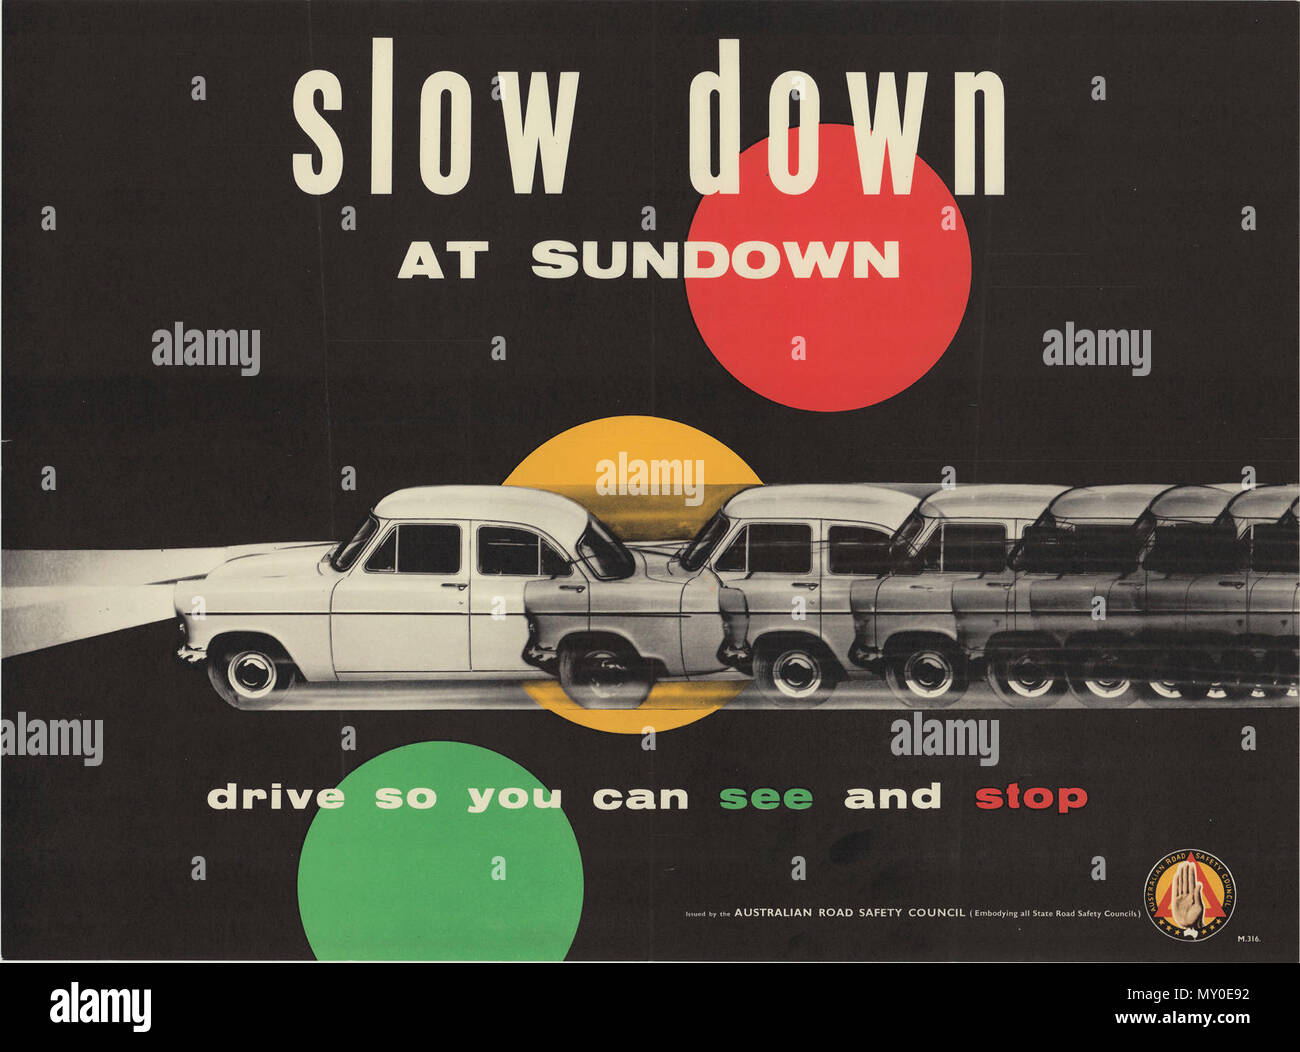 Slow Down At Sundown Road Safety Poster Circa 1939 1959 Driving At Night Six Safety Rules Some Of The Worst Motoring Smashes Occur Late At Night And During The Early Hours